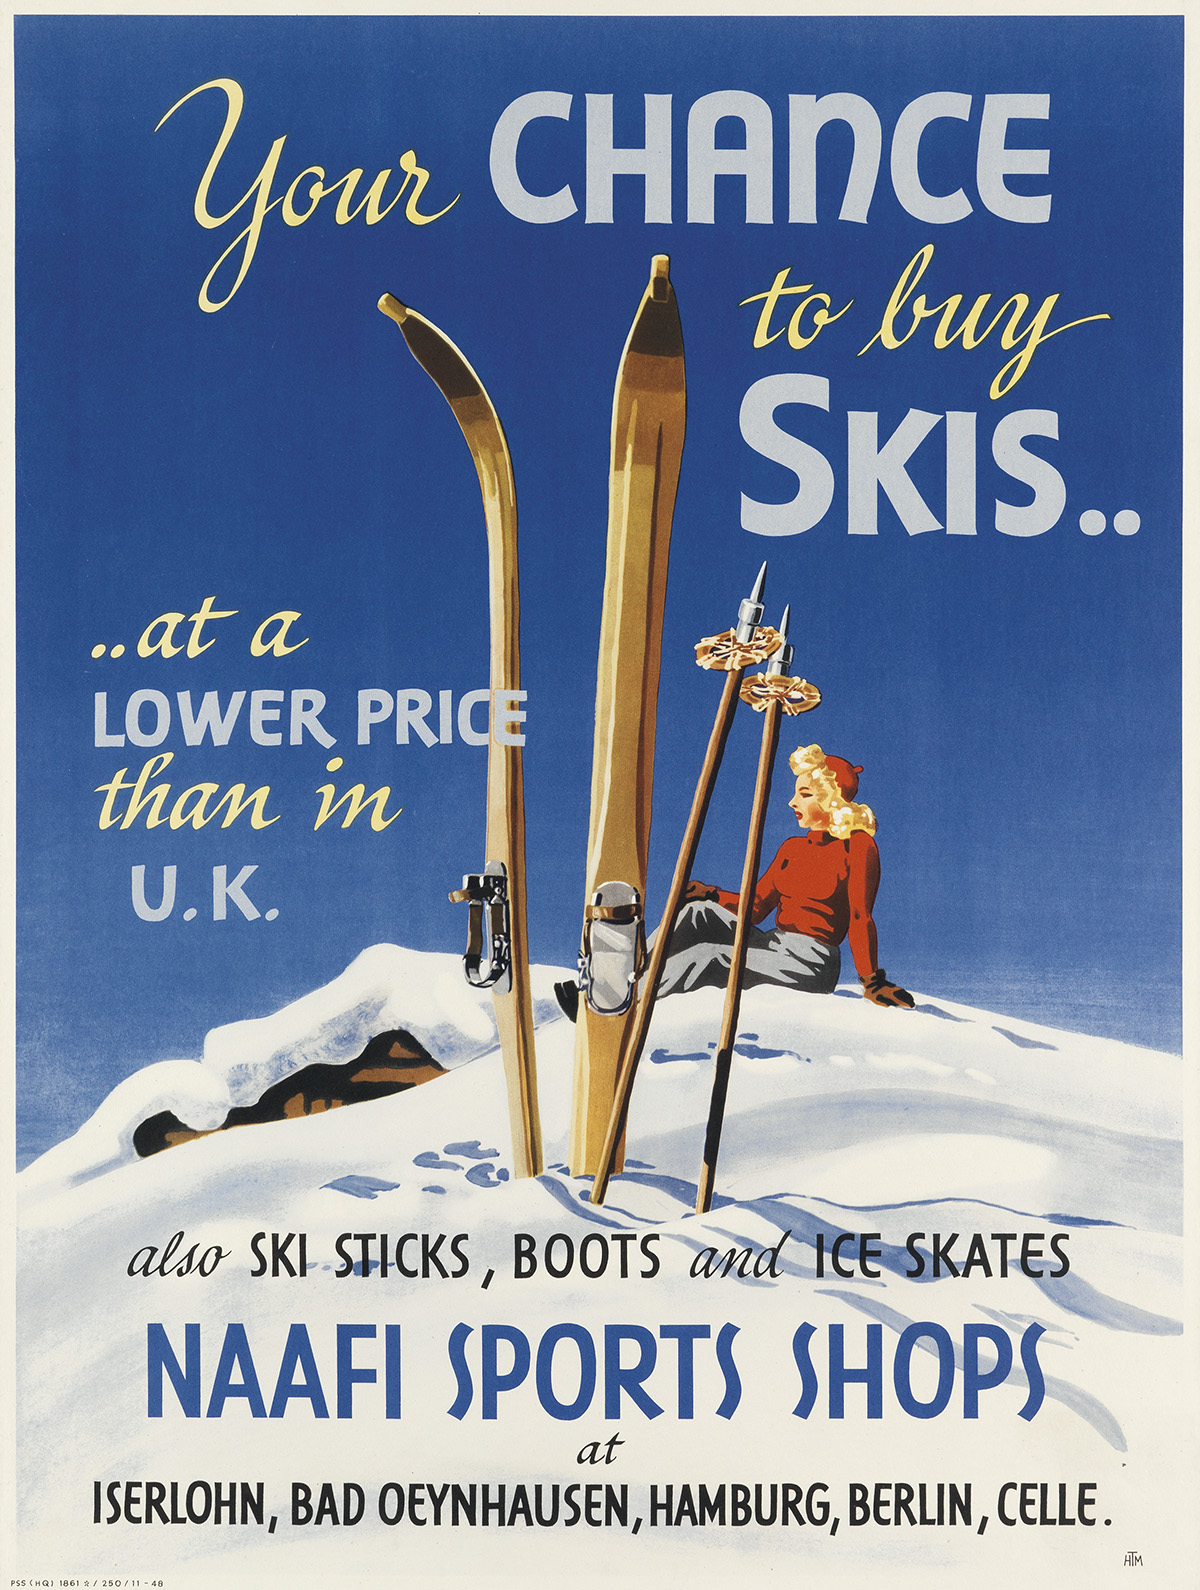 HMT-(MONOGRAM-UNKNOWN)-YOUR-CHANCE-TO-BUY-SKIS--NAAFI-SPORTS